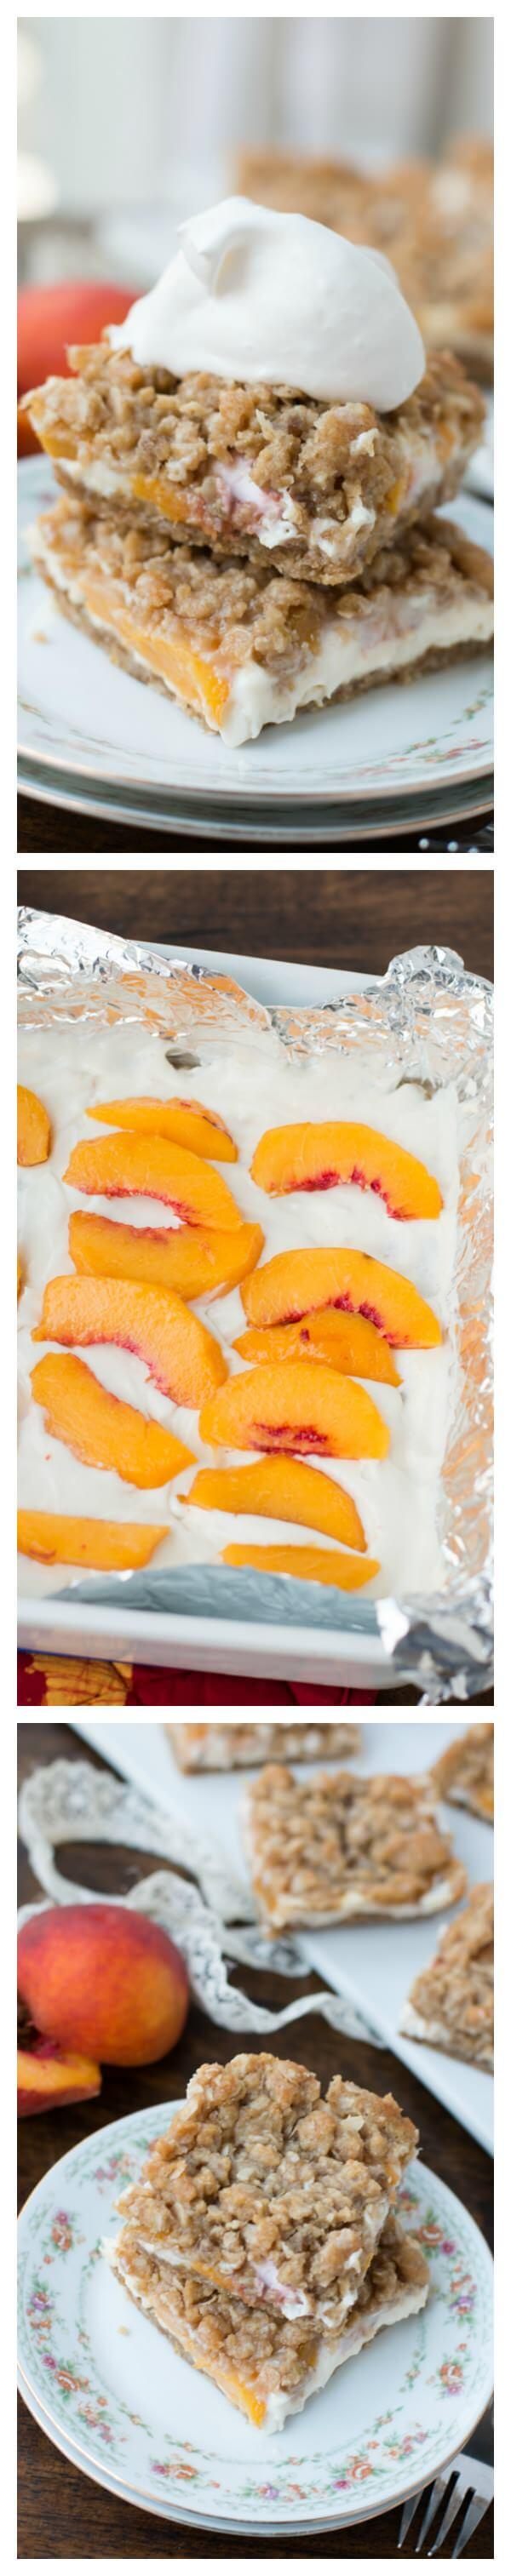 These peaches n cream crumble bars are the best dessert I've ever had with peaches. That creamy filling and brown sugar oat topping!!